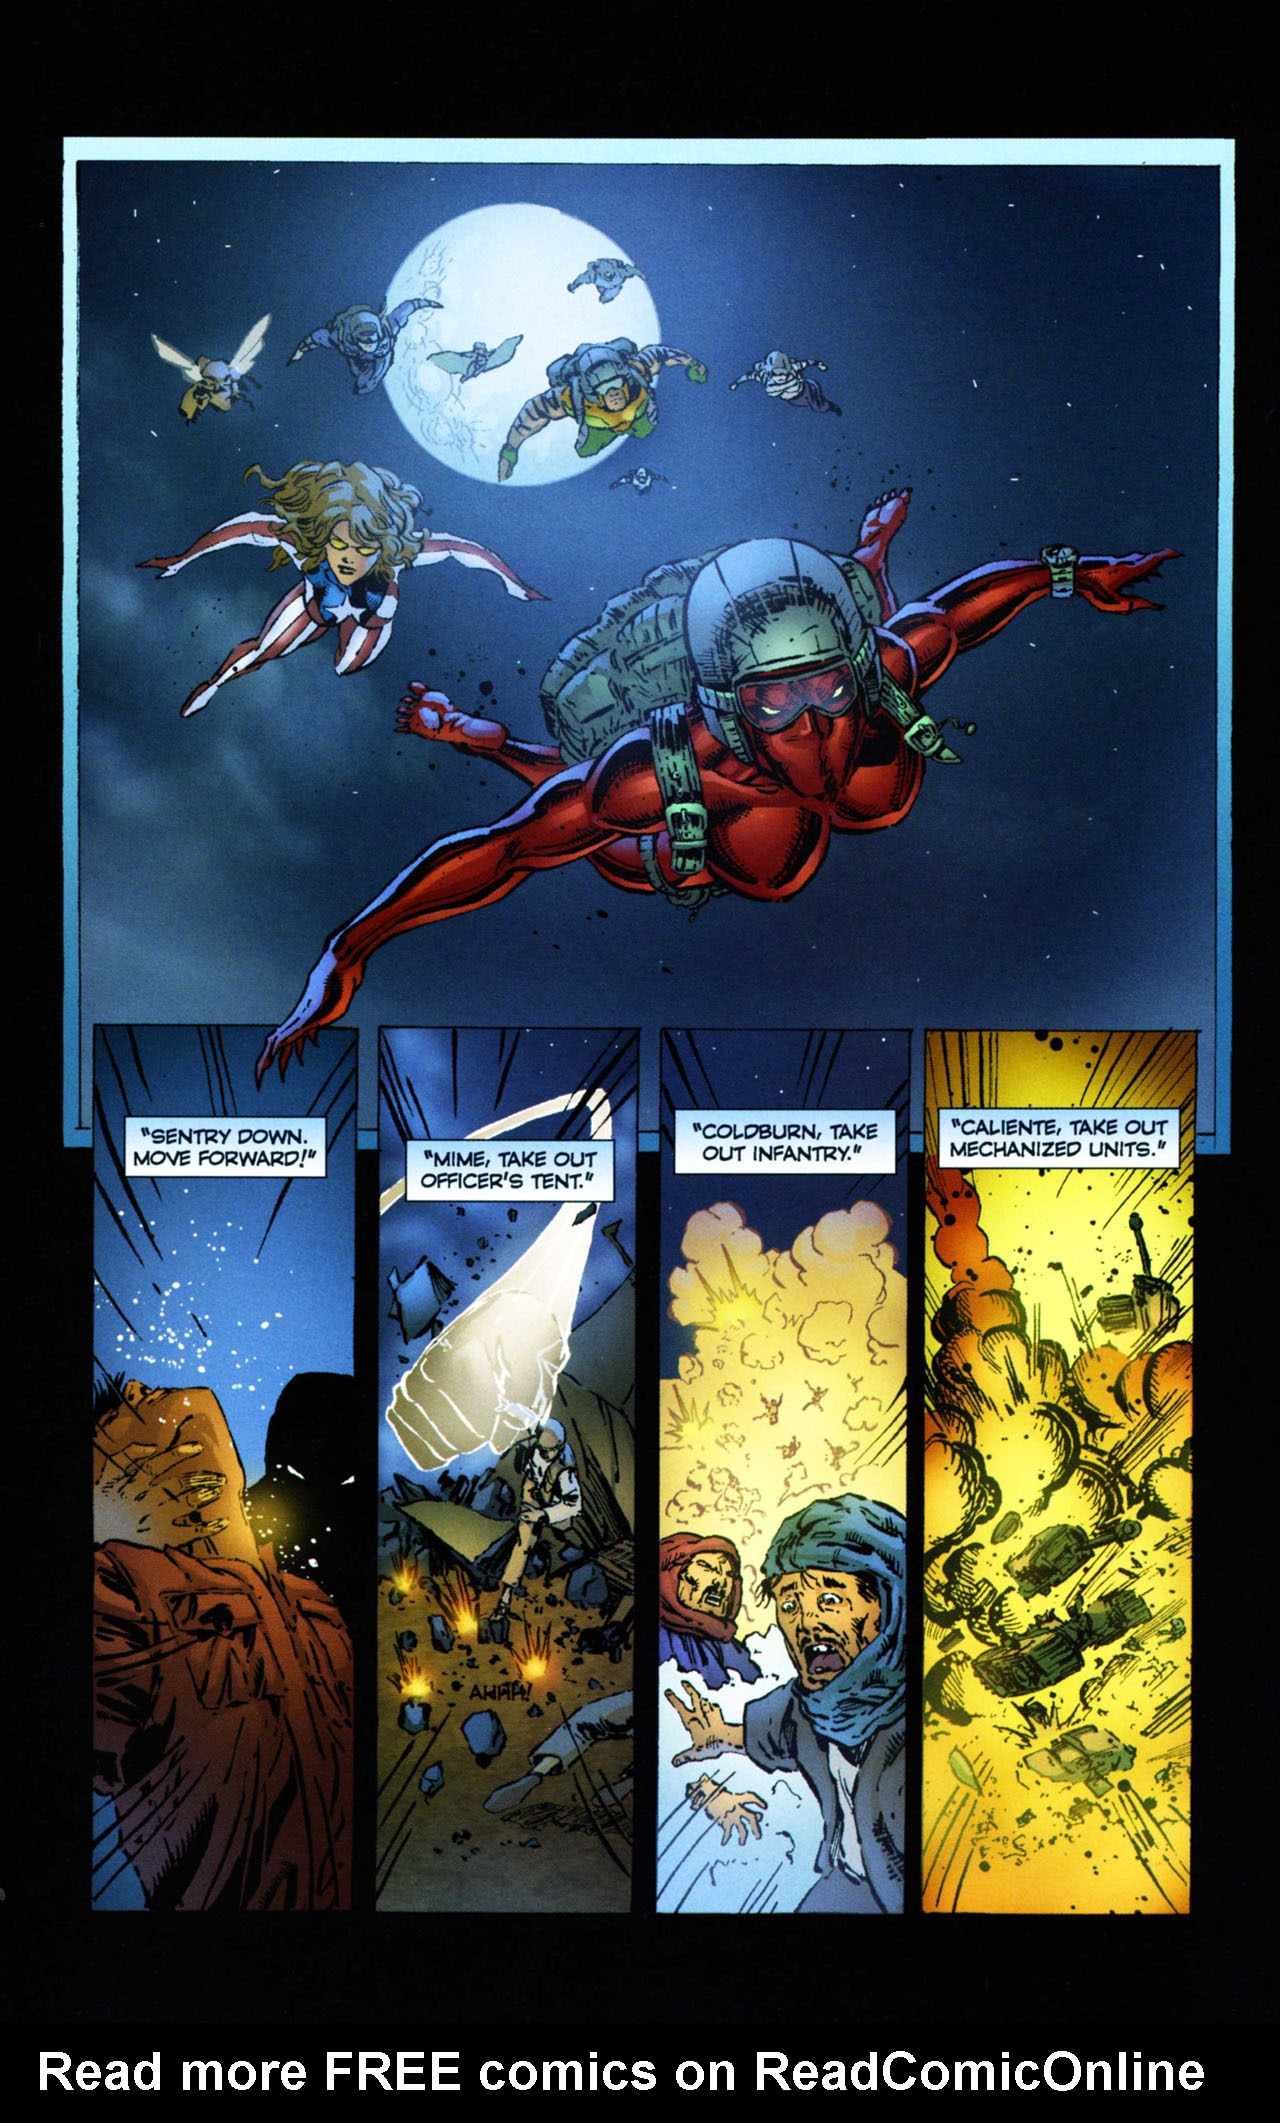 Read online Ant comic -  Issue #11 - 22